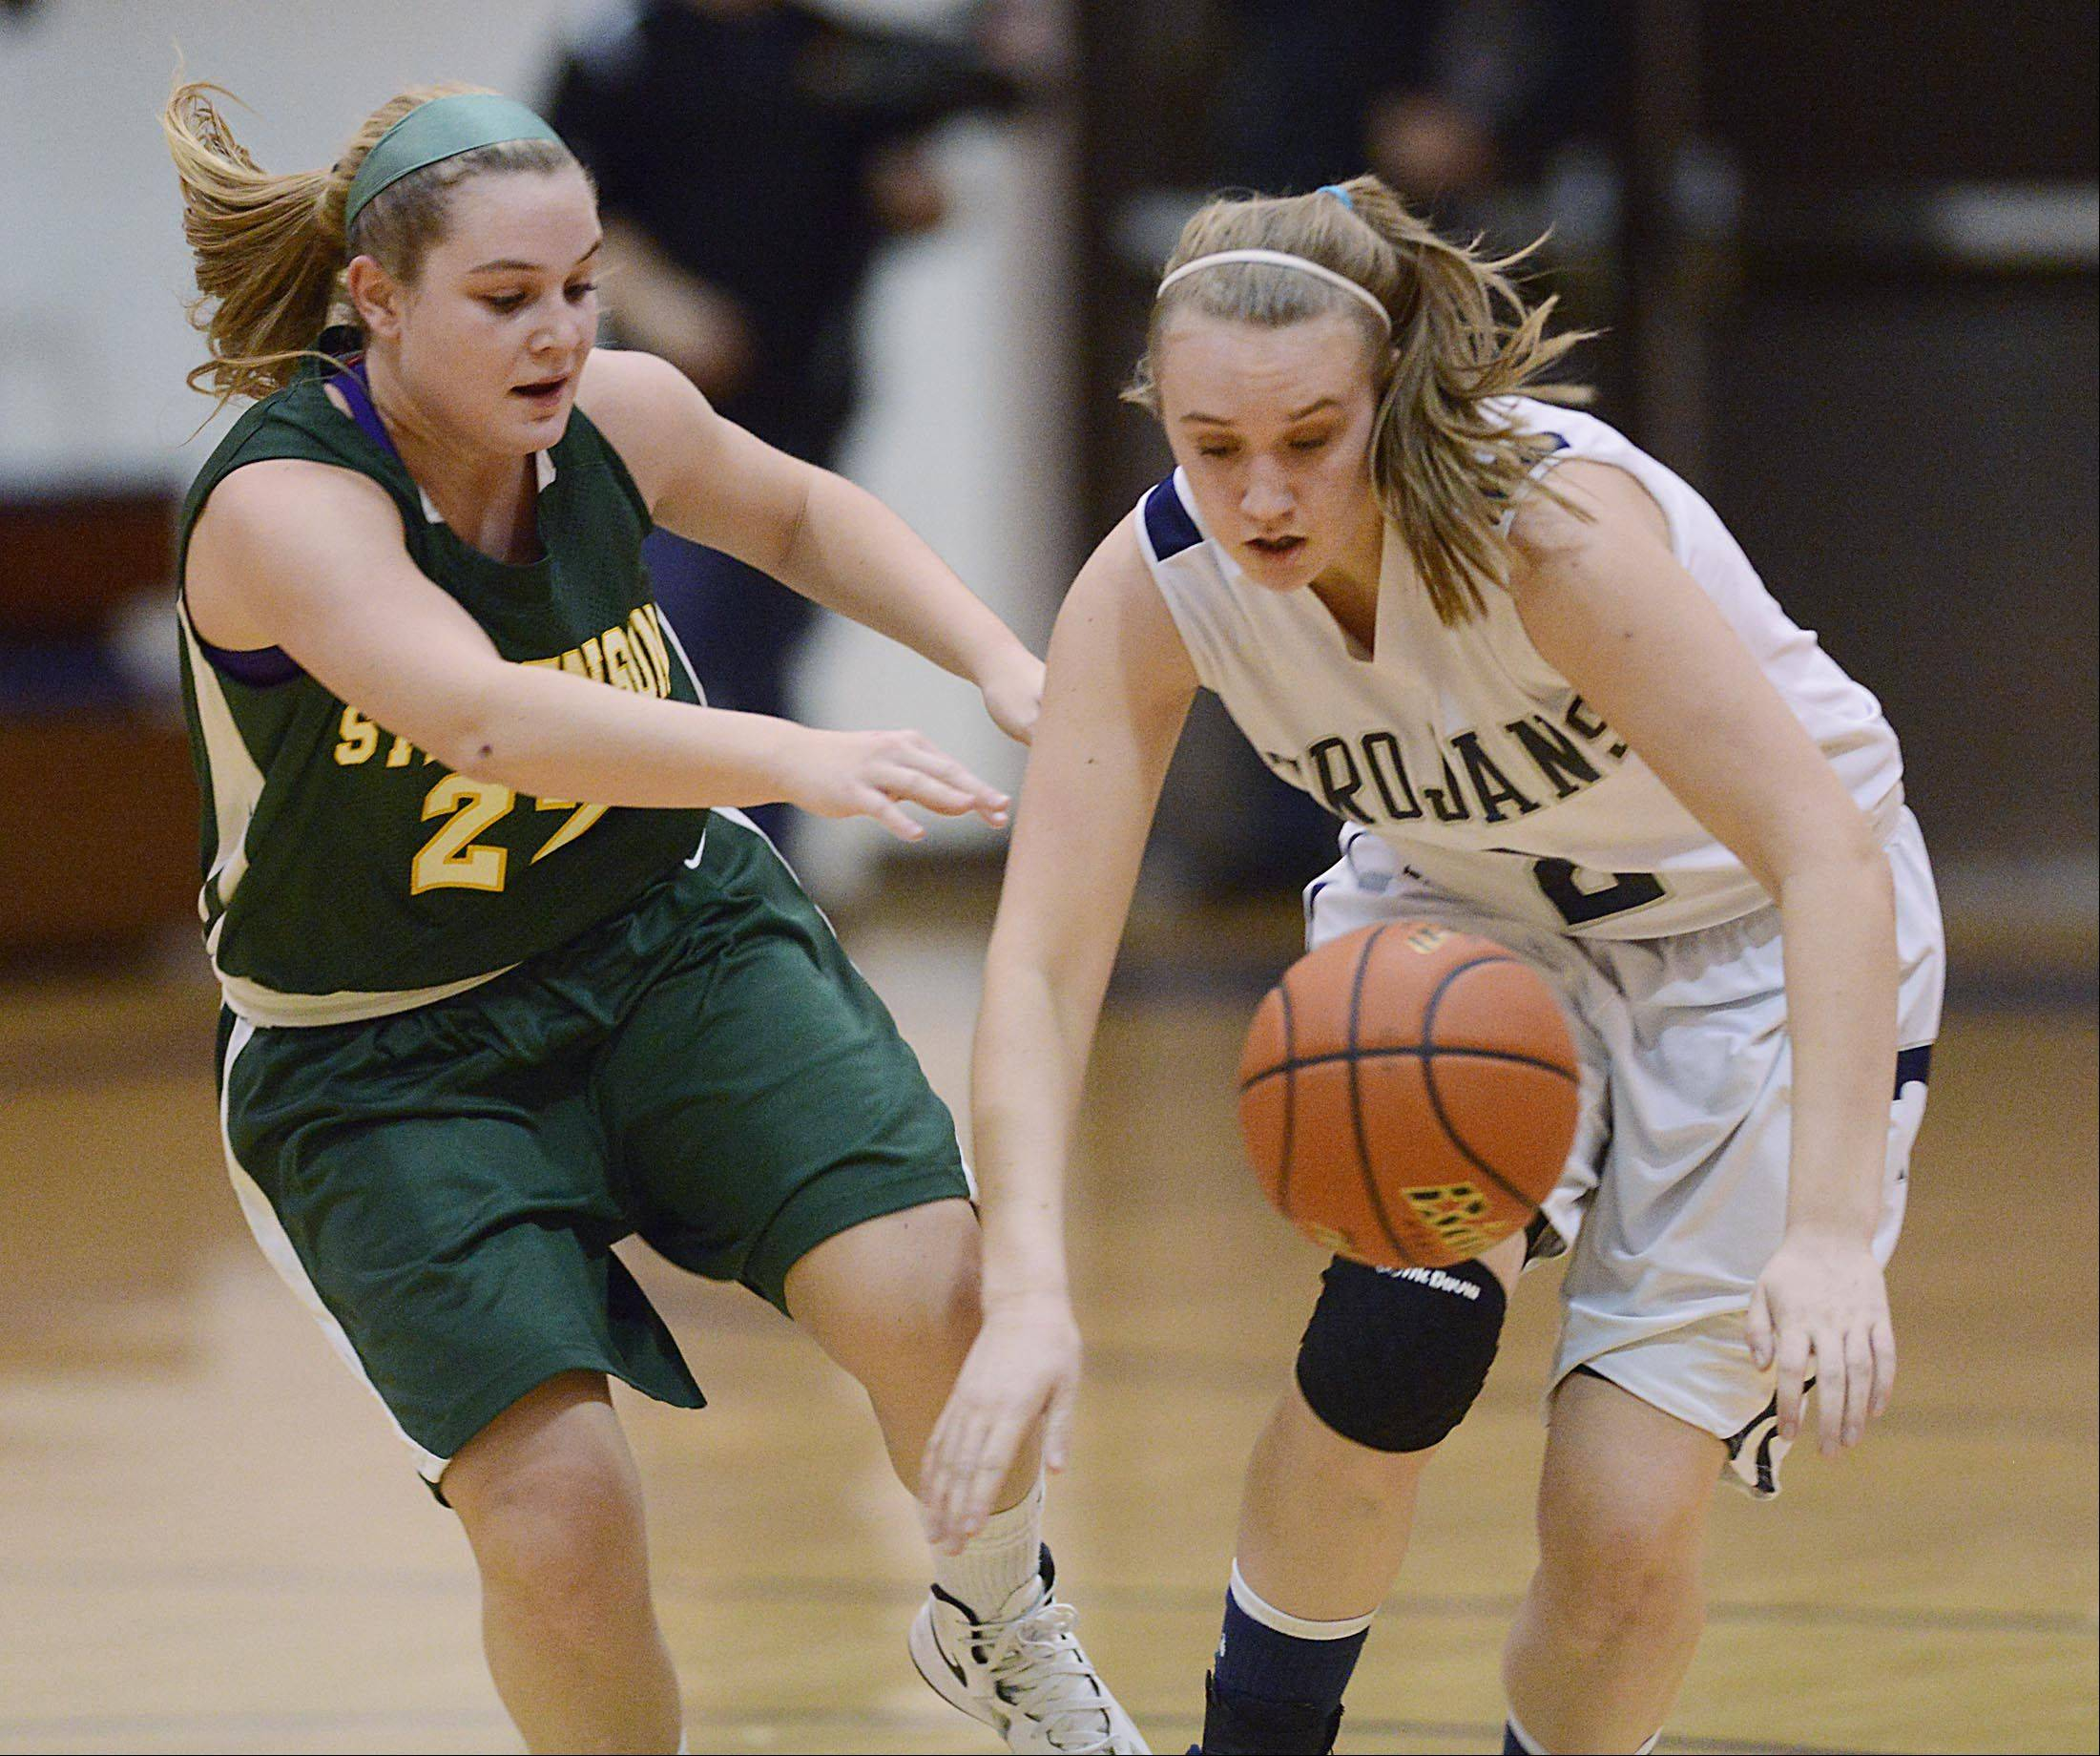 Stevenson's Kari Moffat causes Cary-Grove's Katie Barker to lose control of the ball Wednesday in Cary.